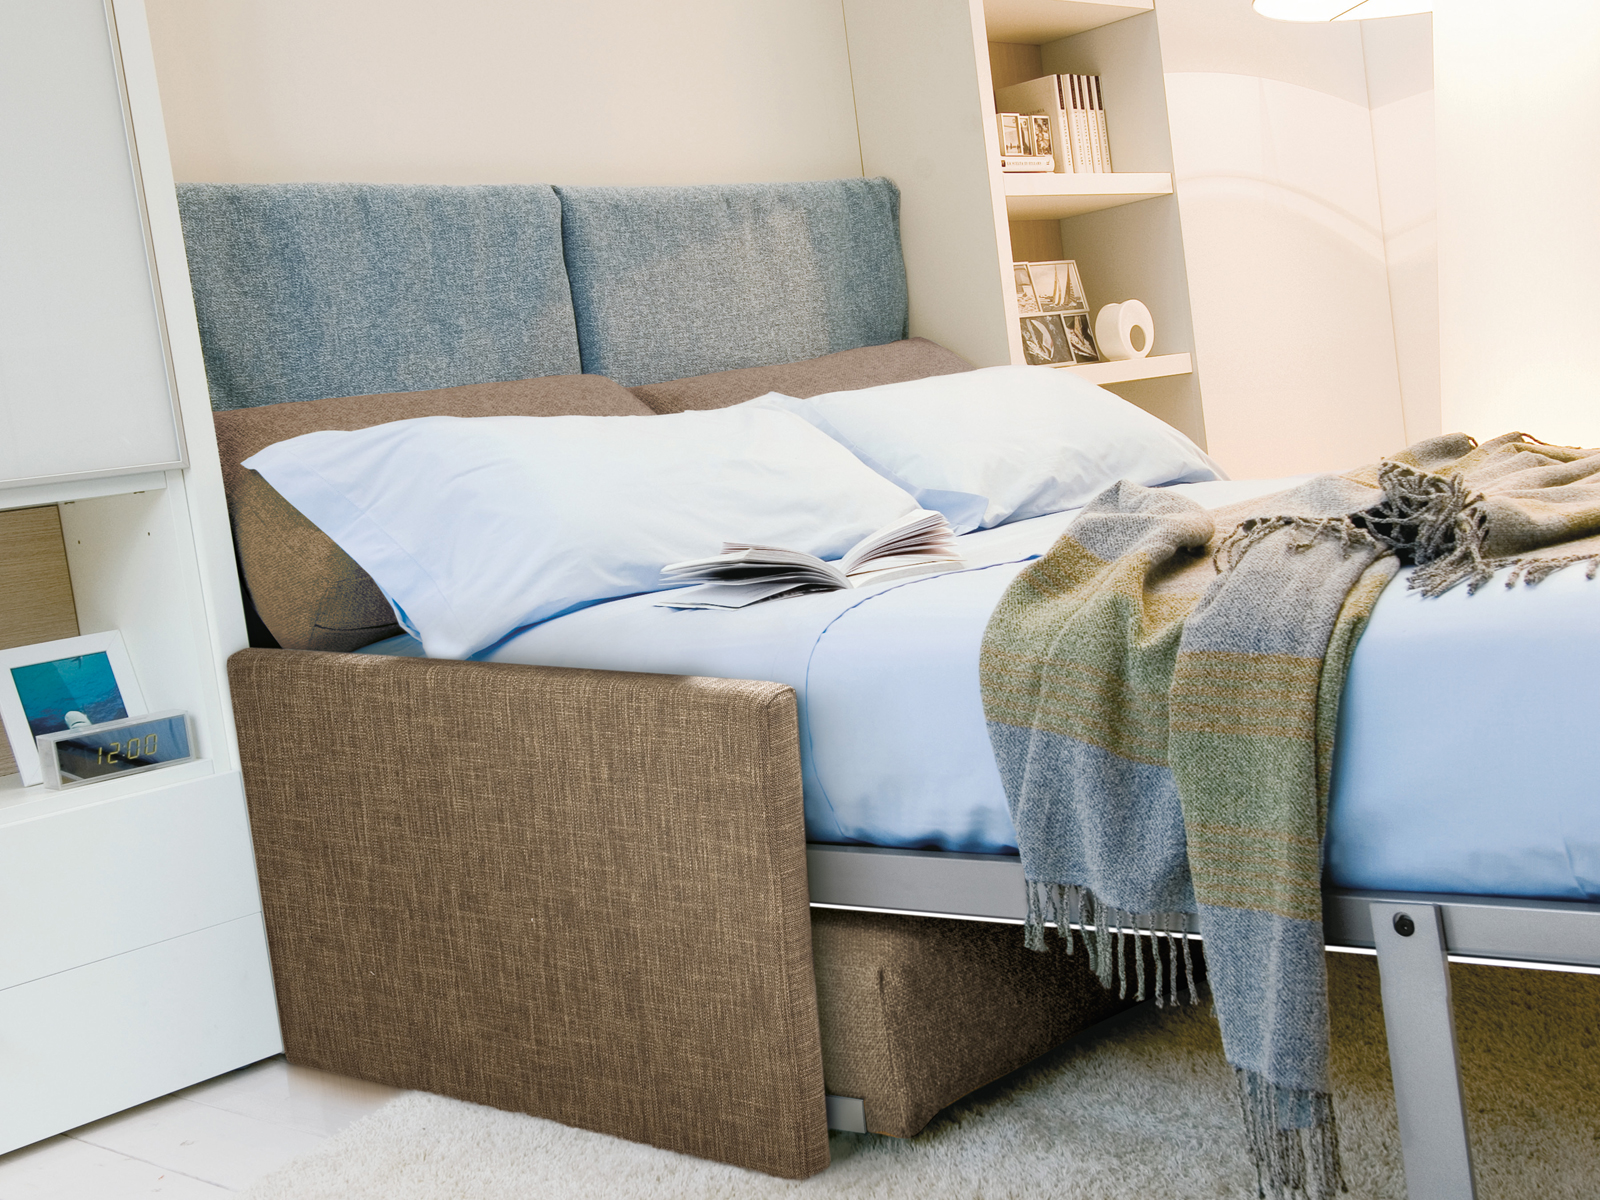 Bed that pulls down from wall - Bed That Pulls Down From Wall 45